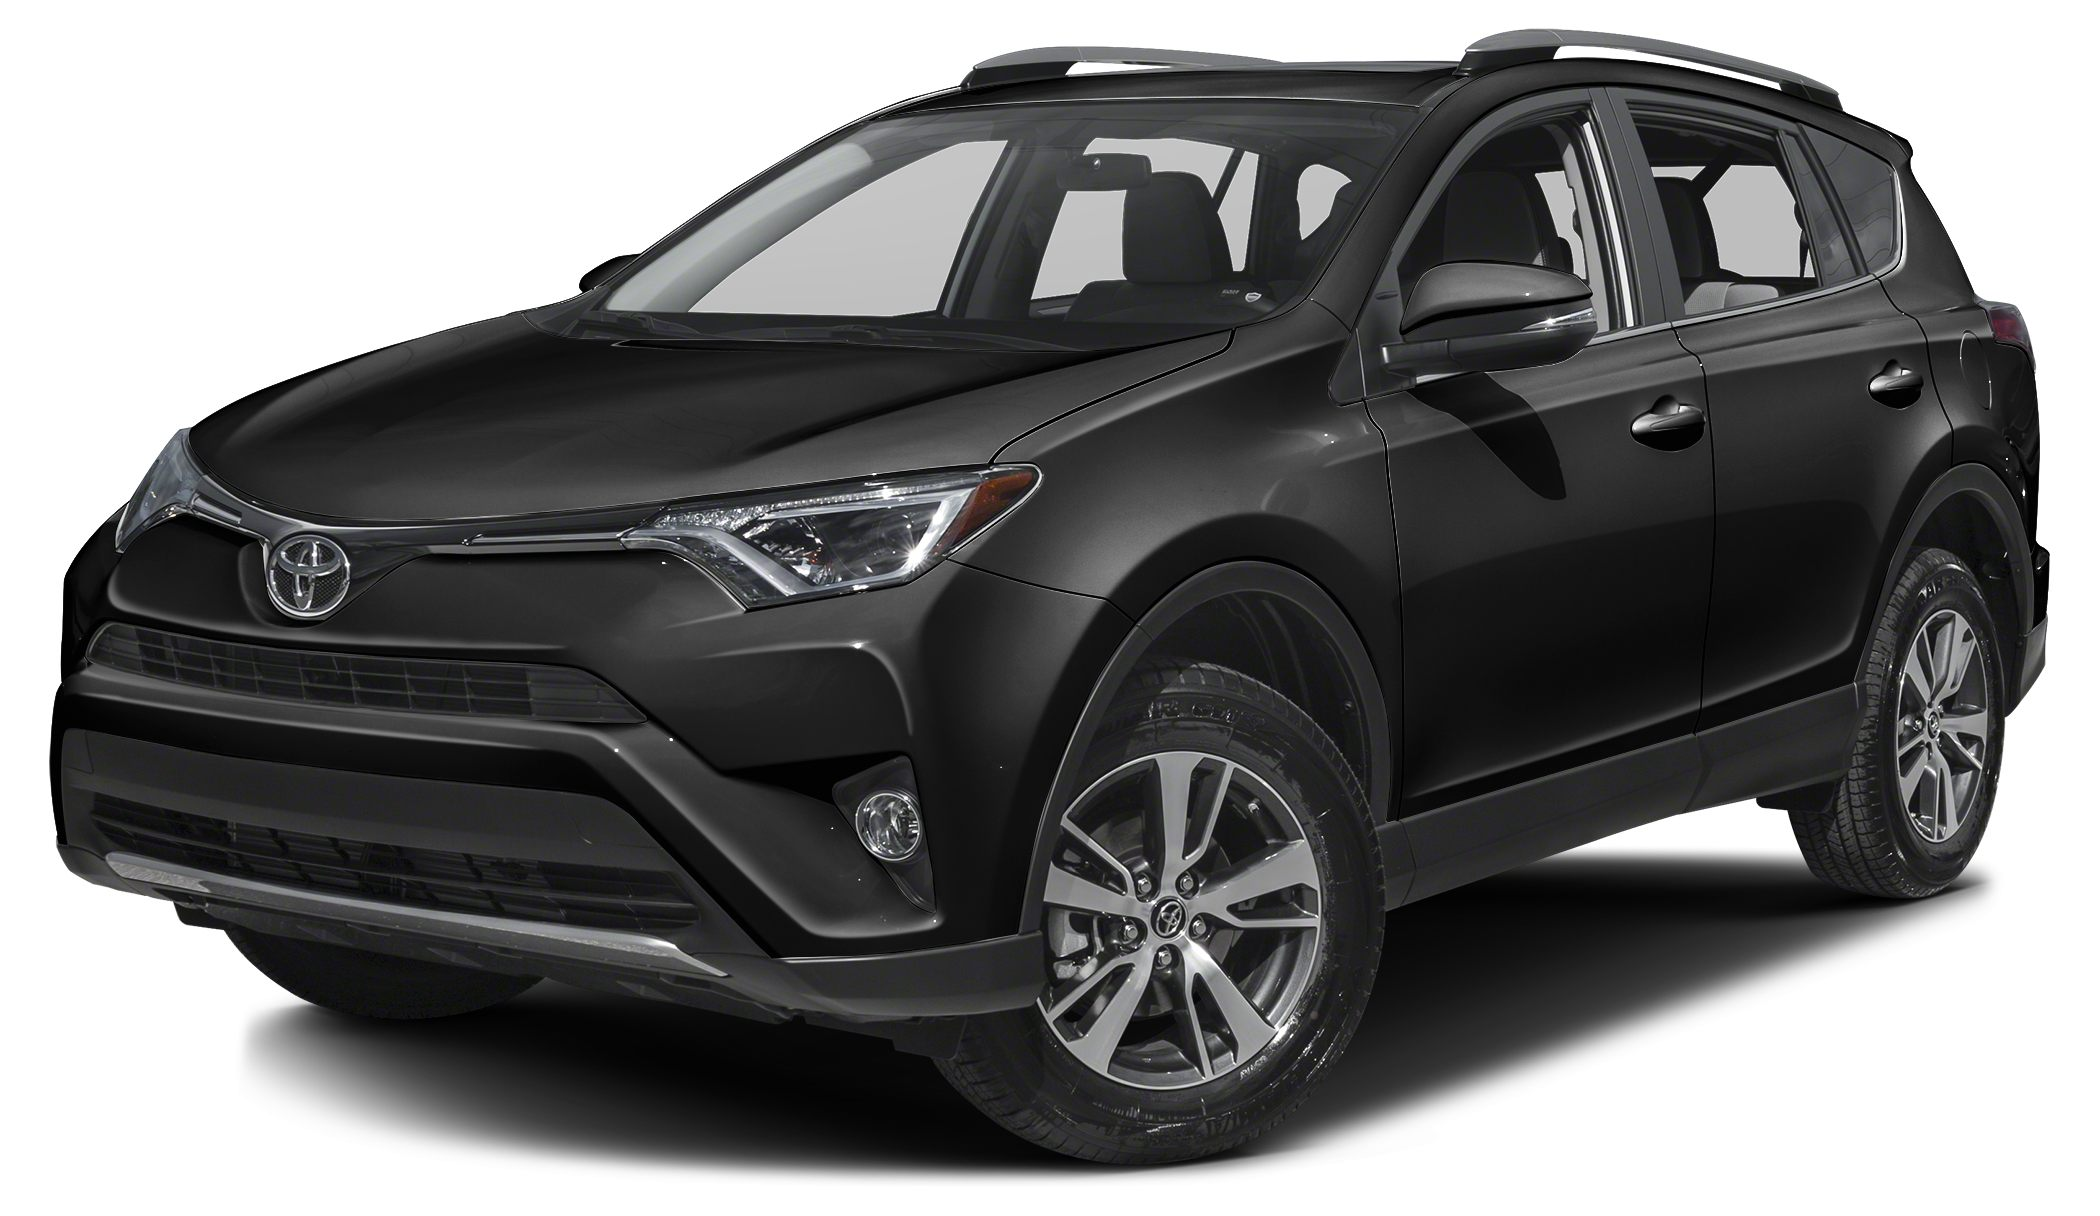 2016 Toyota RAV4 XLE XLE trim CARFAX 1-Owner FUEL EFFICIENT 28 MPG Hwy22 MPG City Sunroof iPo